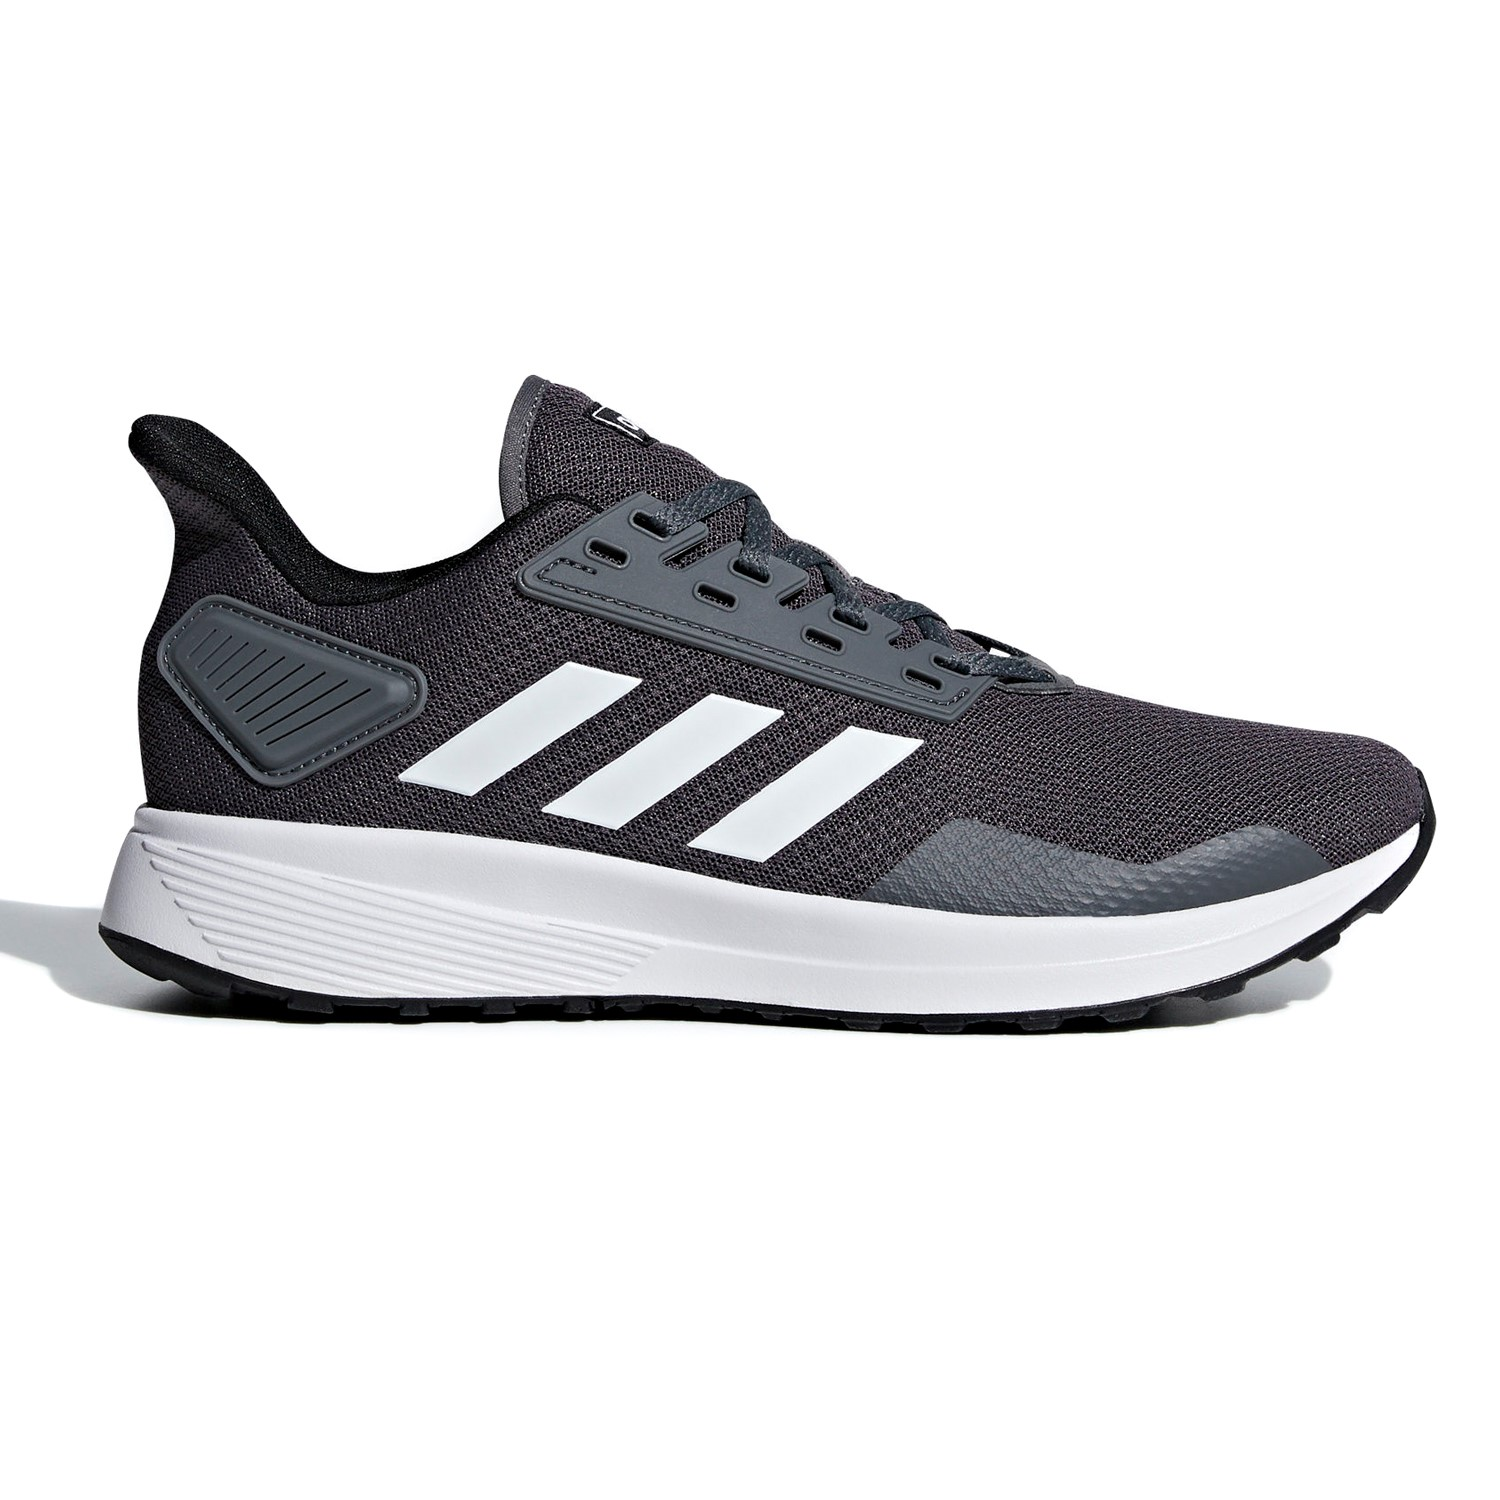 low priced b6fb3 a3533 Adidas Duramo 9 - Mens Running Shoes - GreyFootwear White